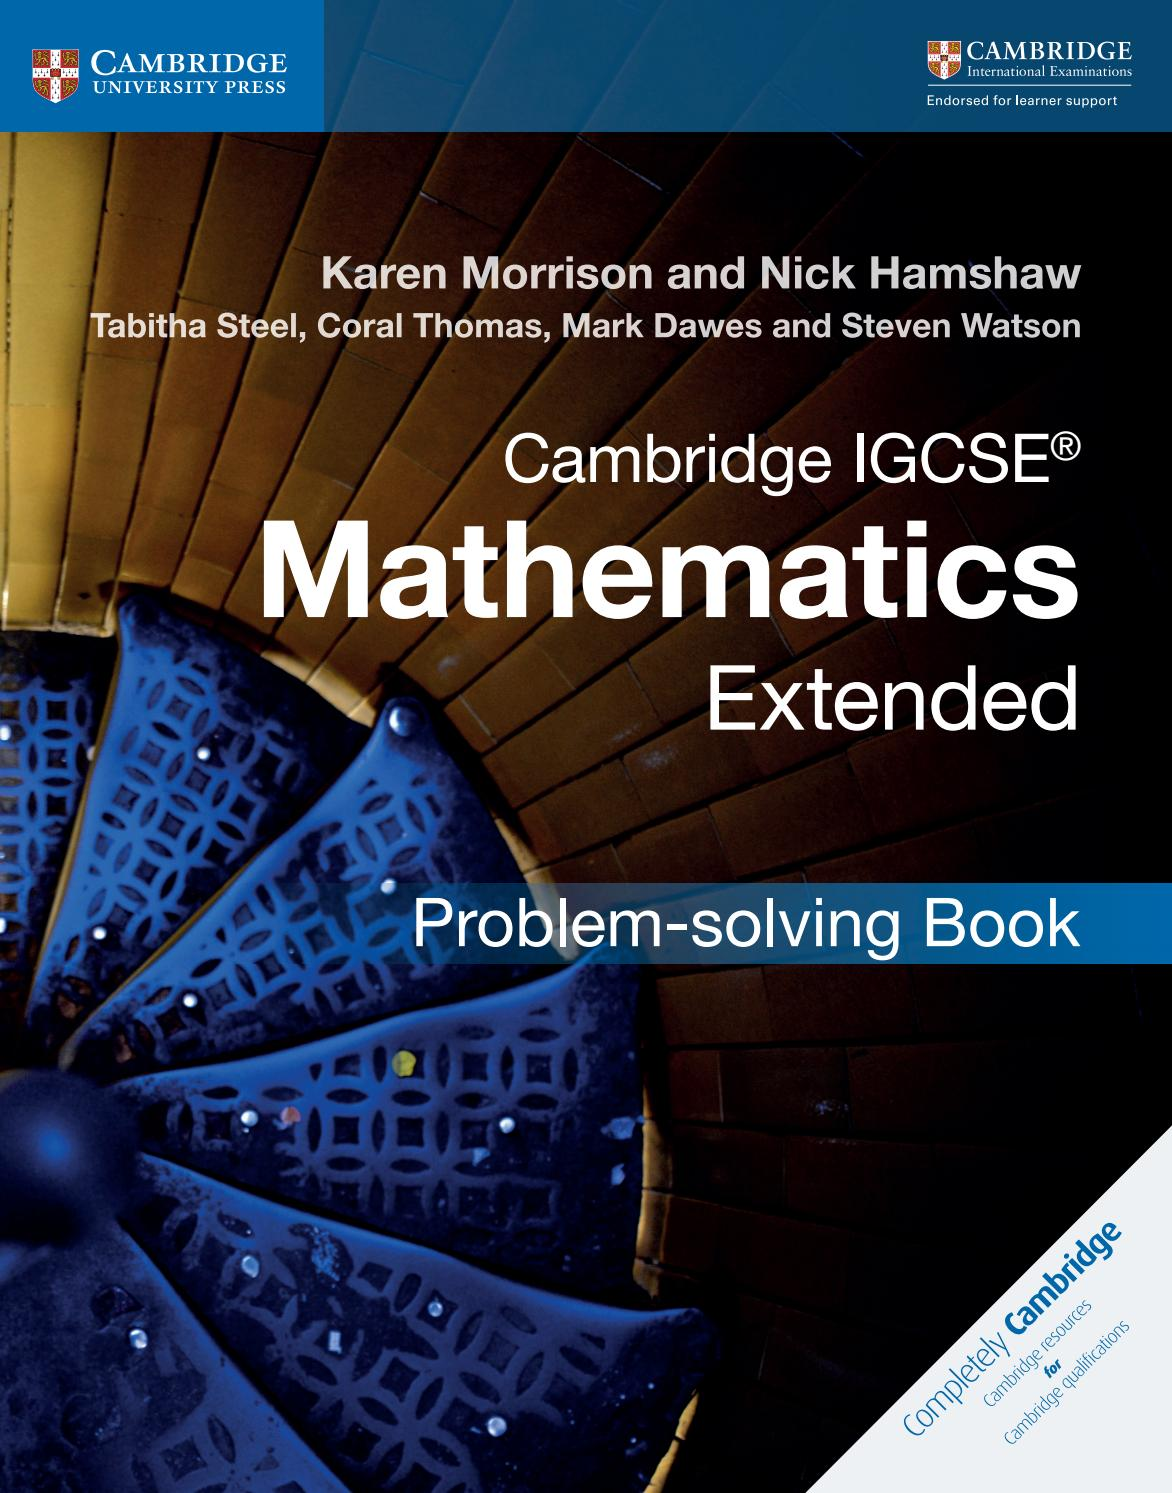 Preview Cambridge IGCSE Mathematics Extended Problem-solving Book by  Cambridge University Press Education - issuu